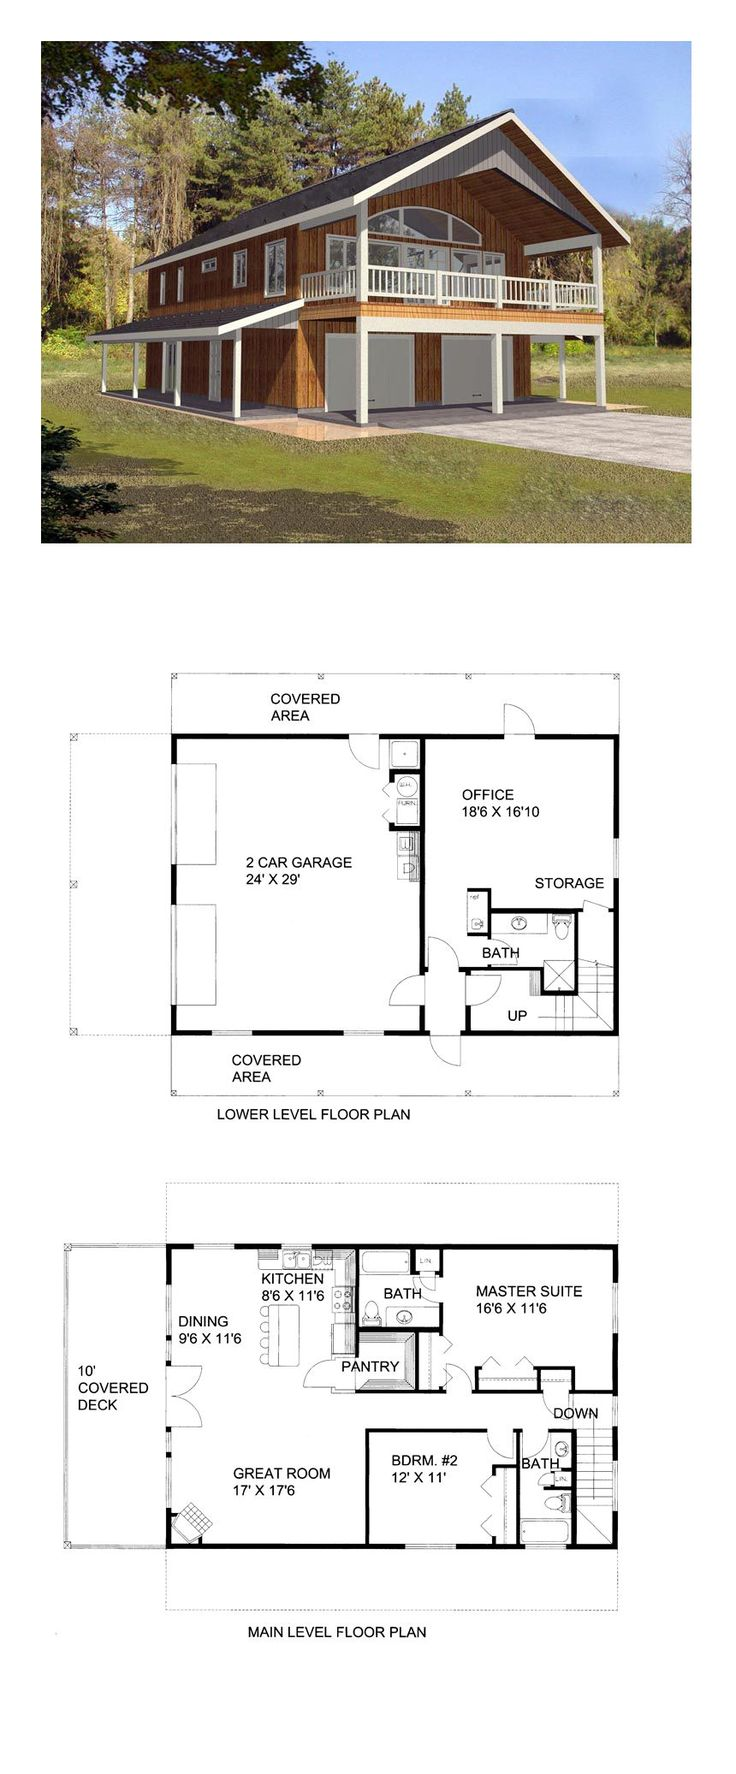 Garage Plans With 2 Bedroom Apartment Above | Amazing House Plans